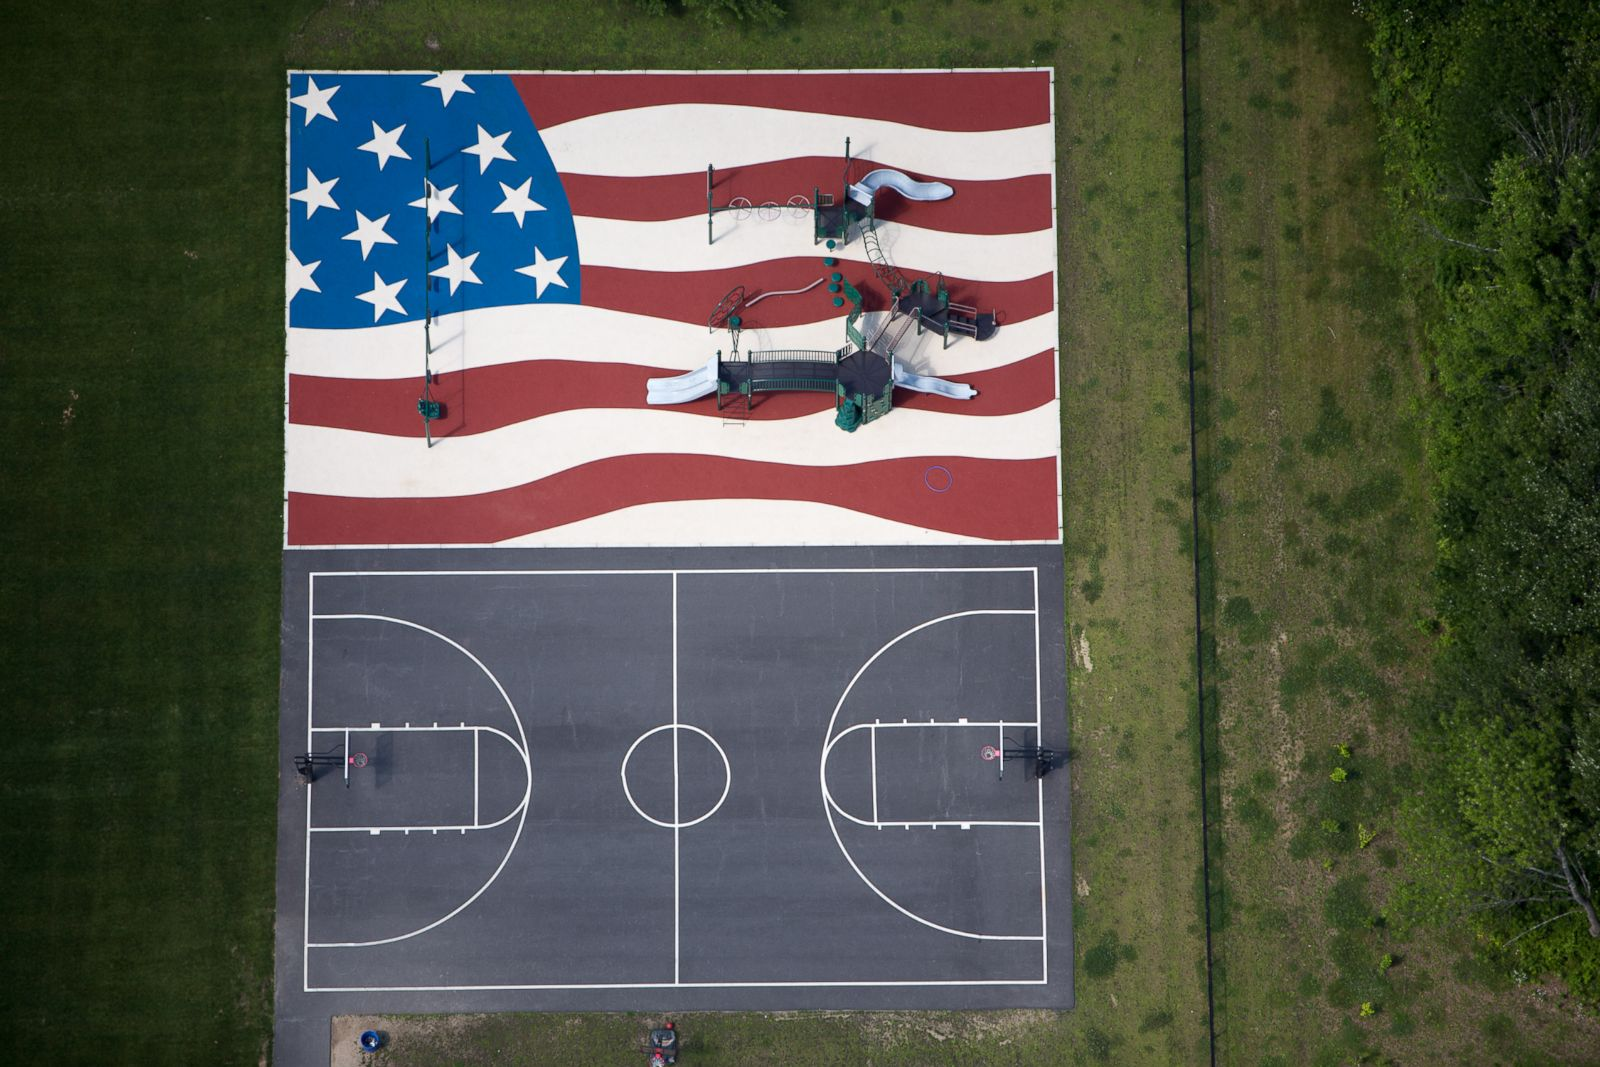 An American flag playground and a basketball court in Stow, Massachussetts